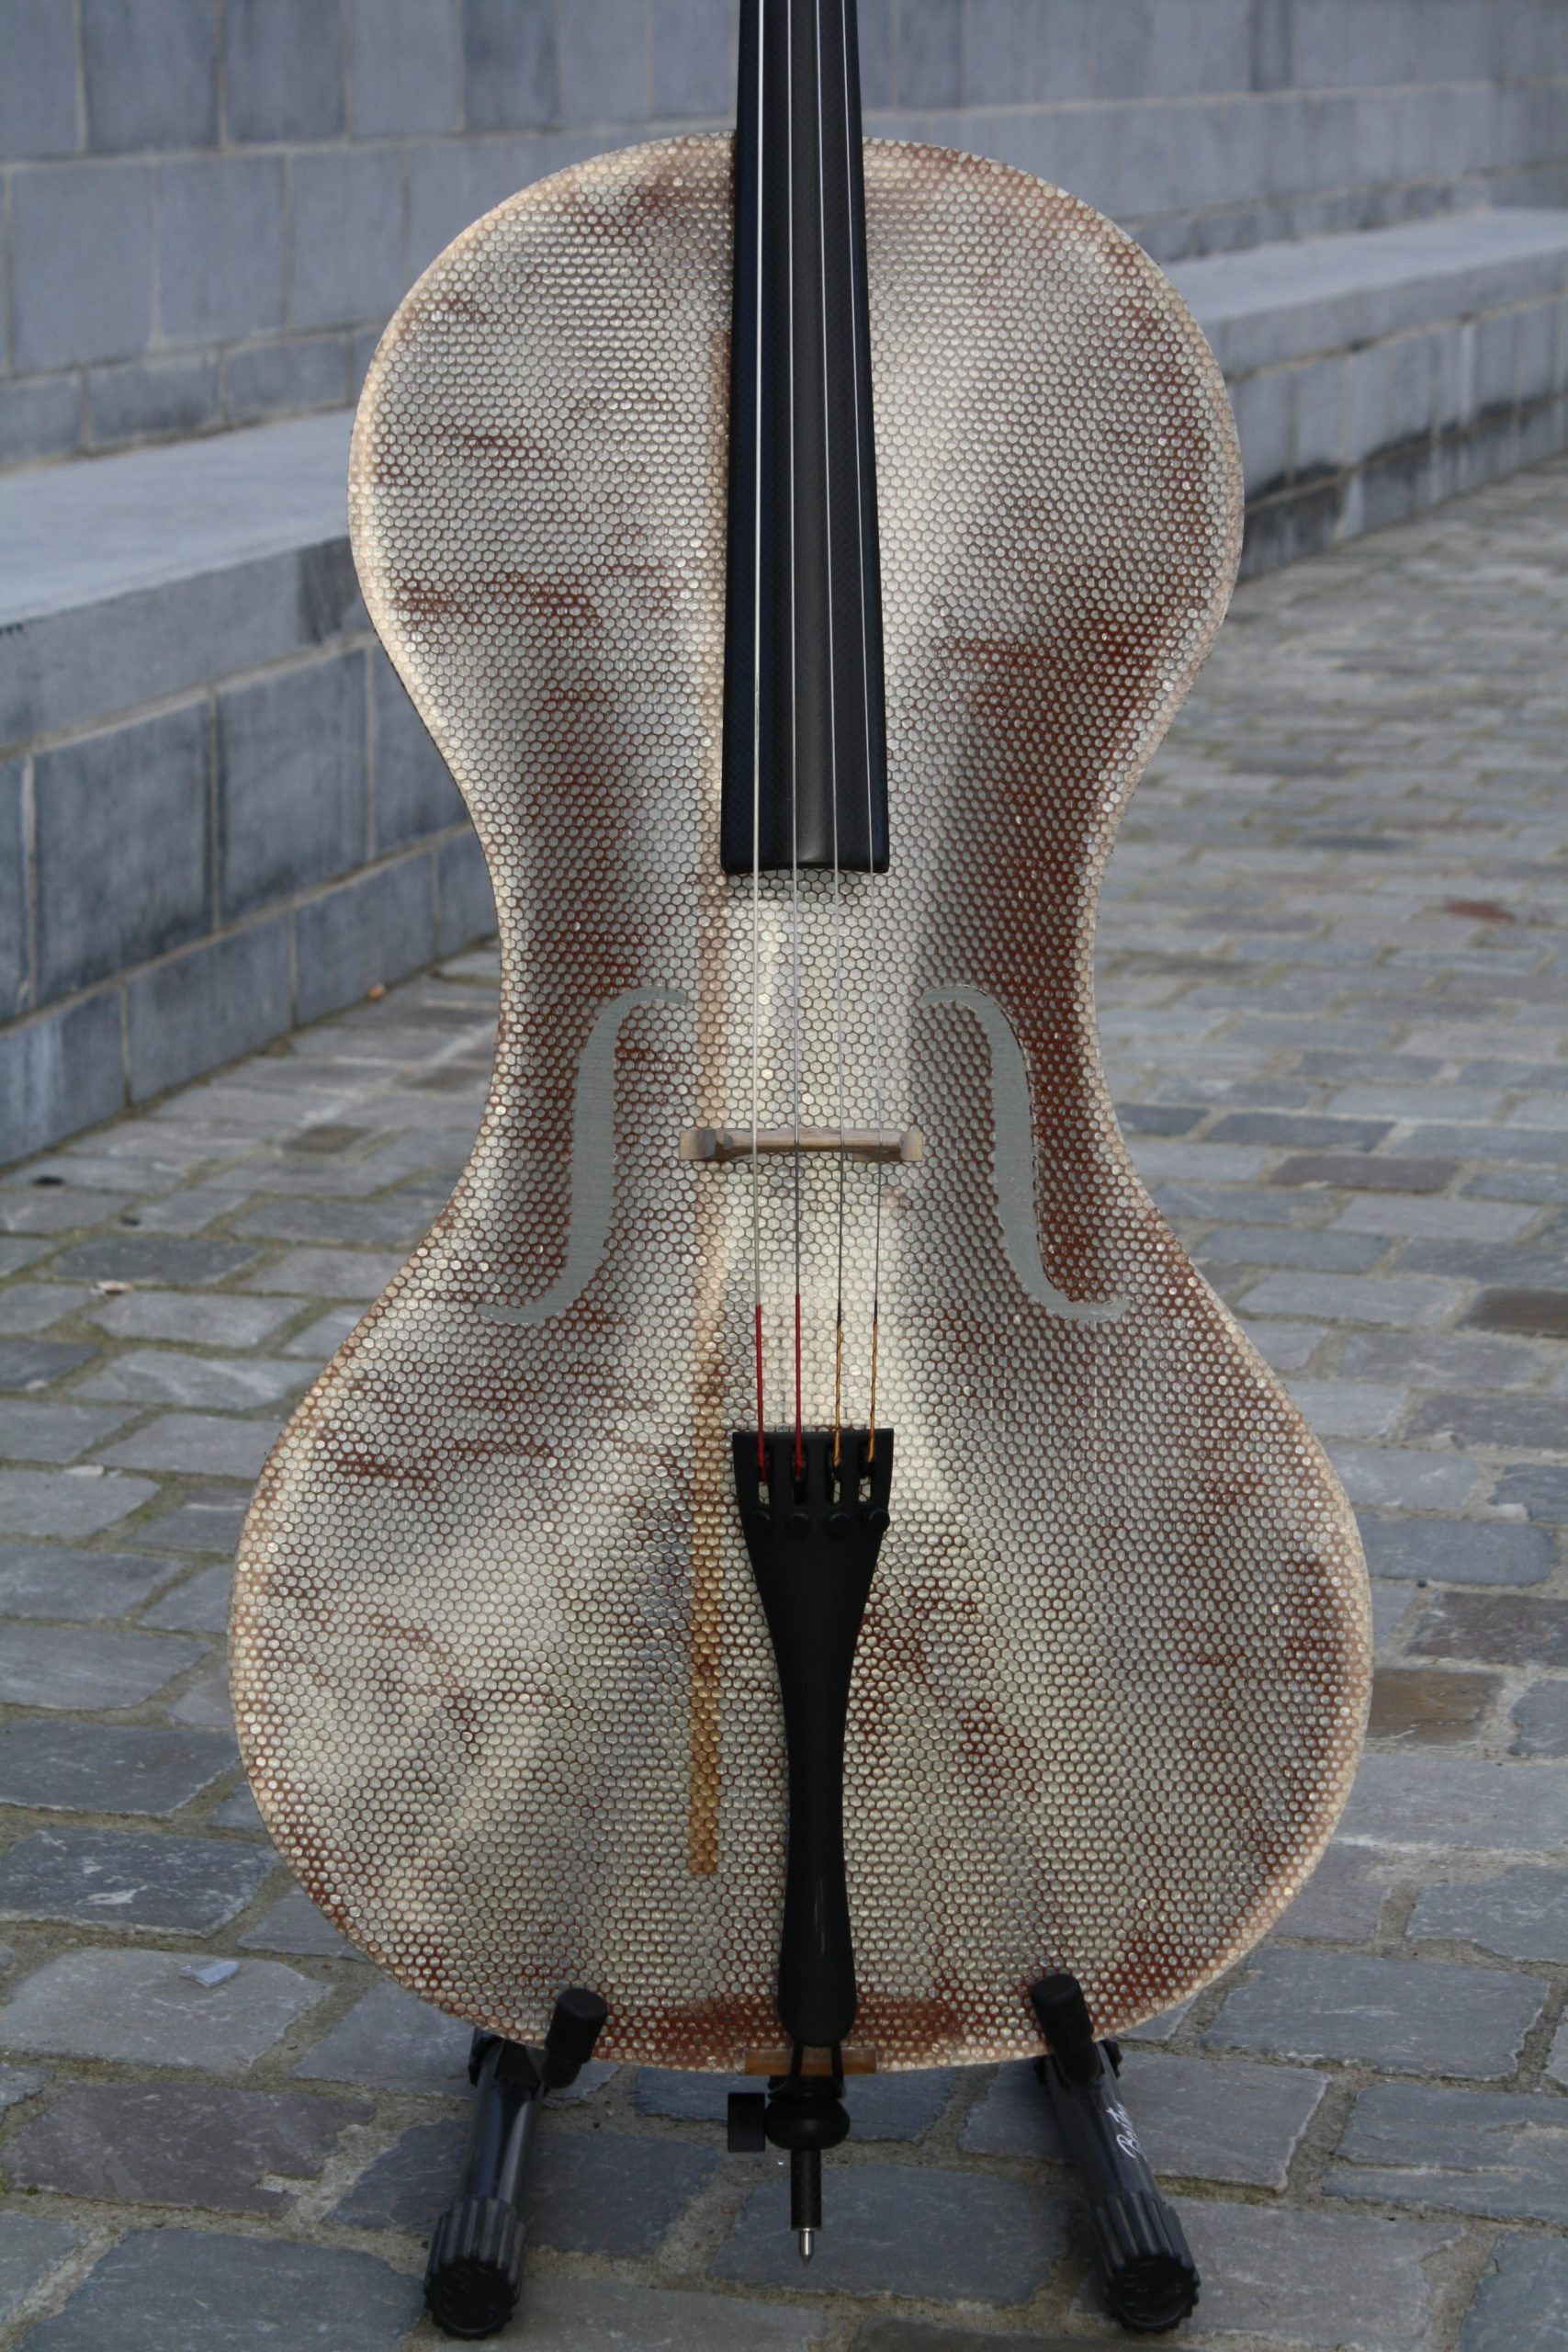 Detail of the Glass Fiber Cello by Tim Duerinck